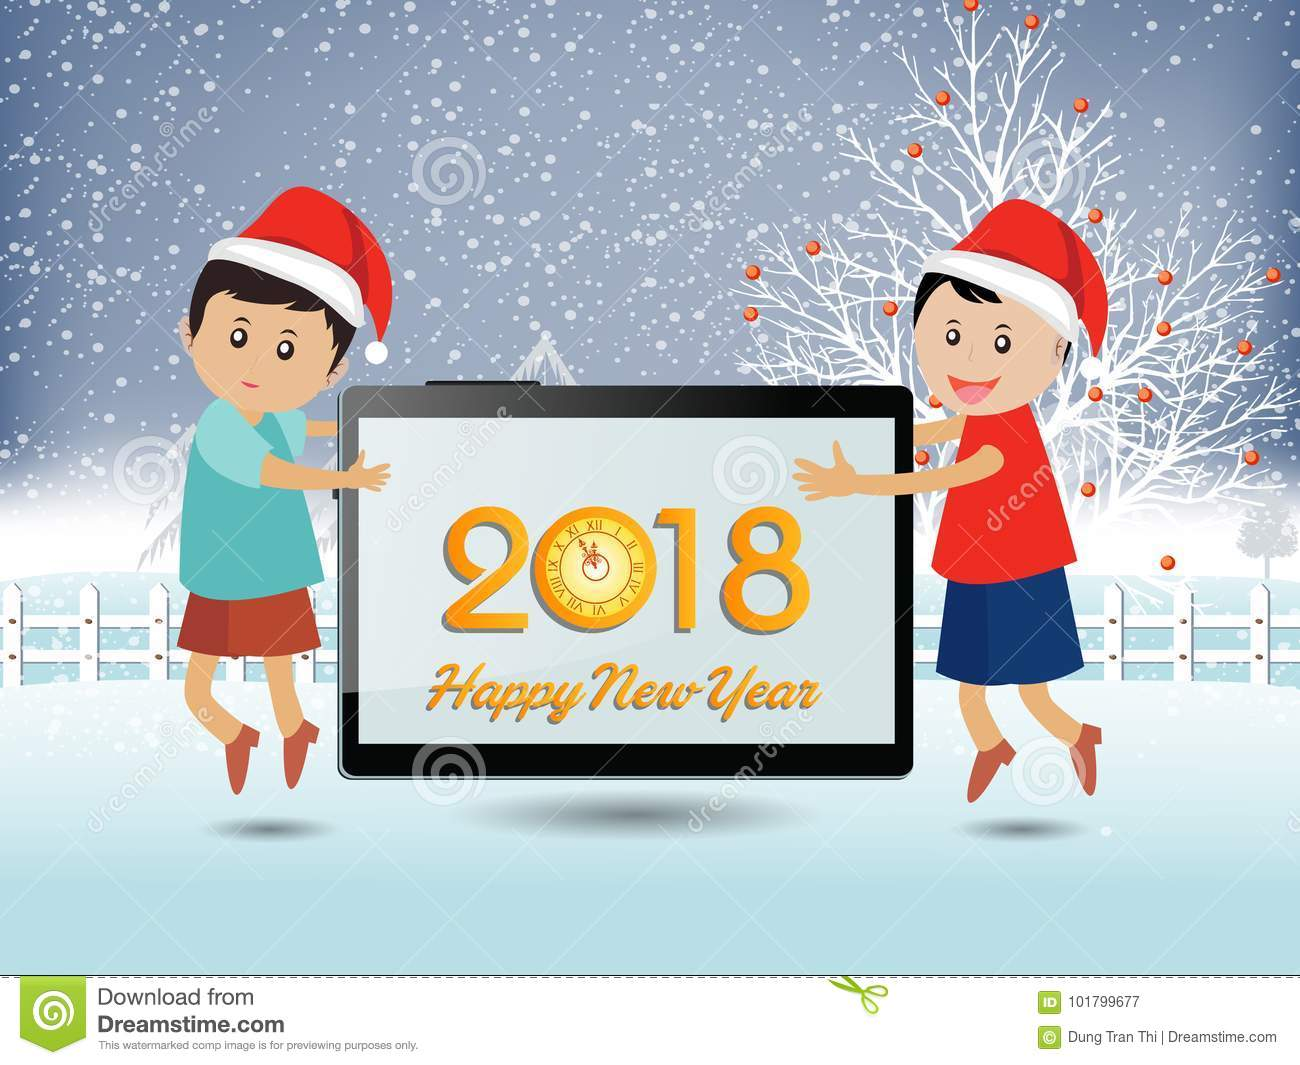 Year 2018 Christmas Greetings Happy Funnypictures Picturesboss